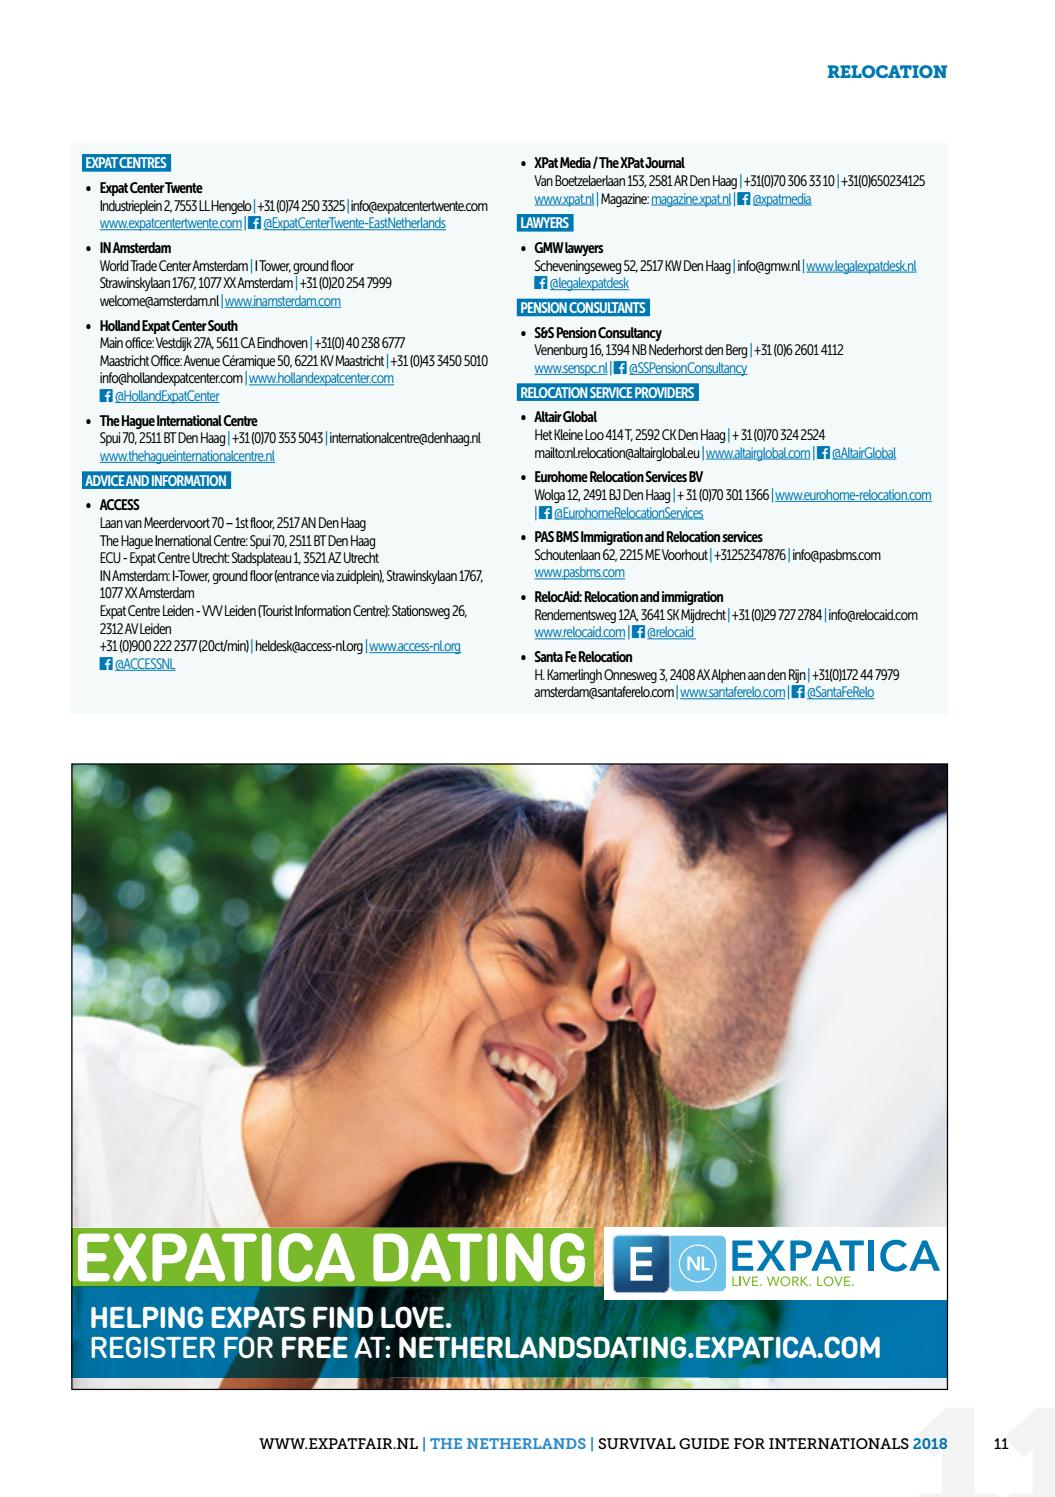 expat dating den Haag